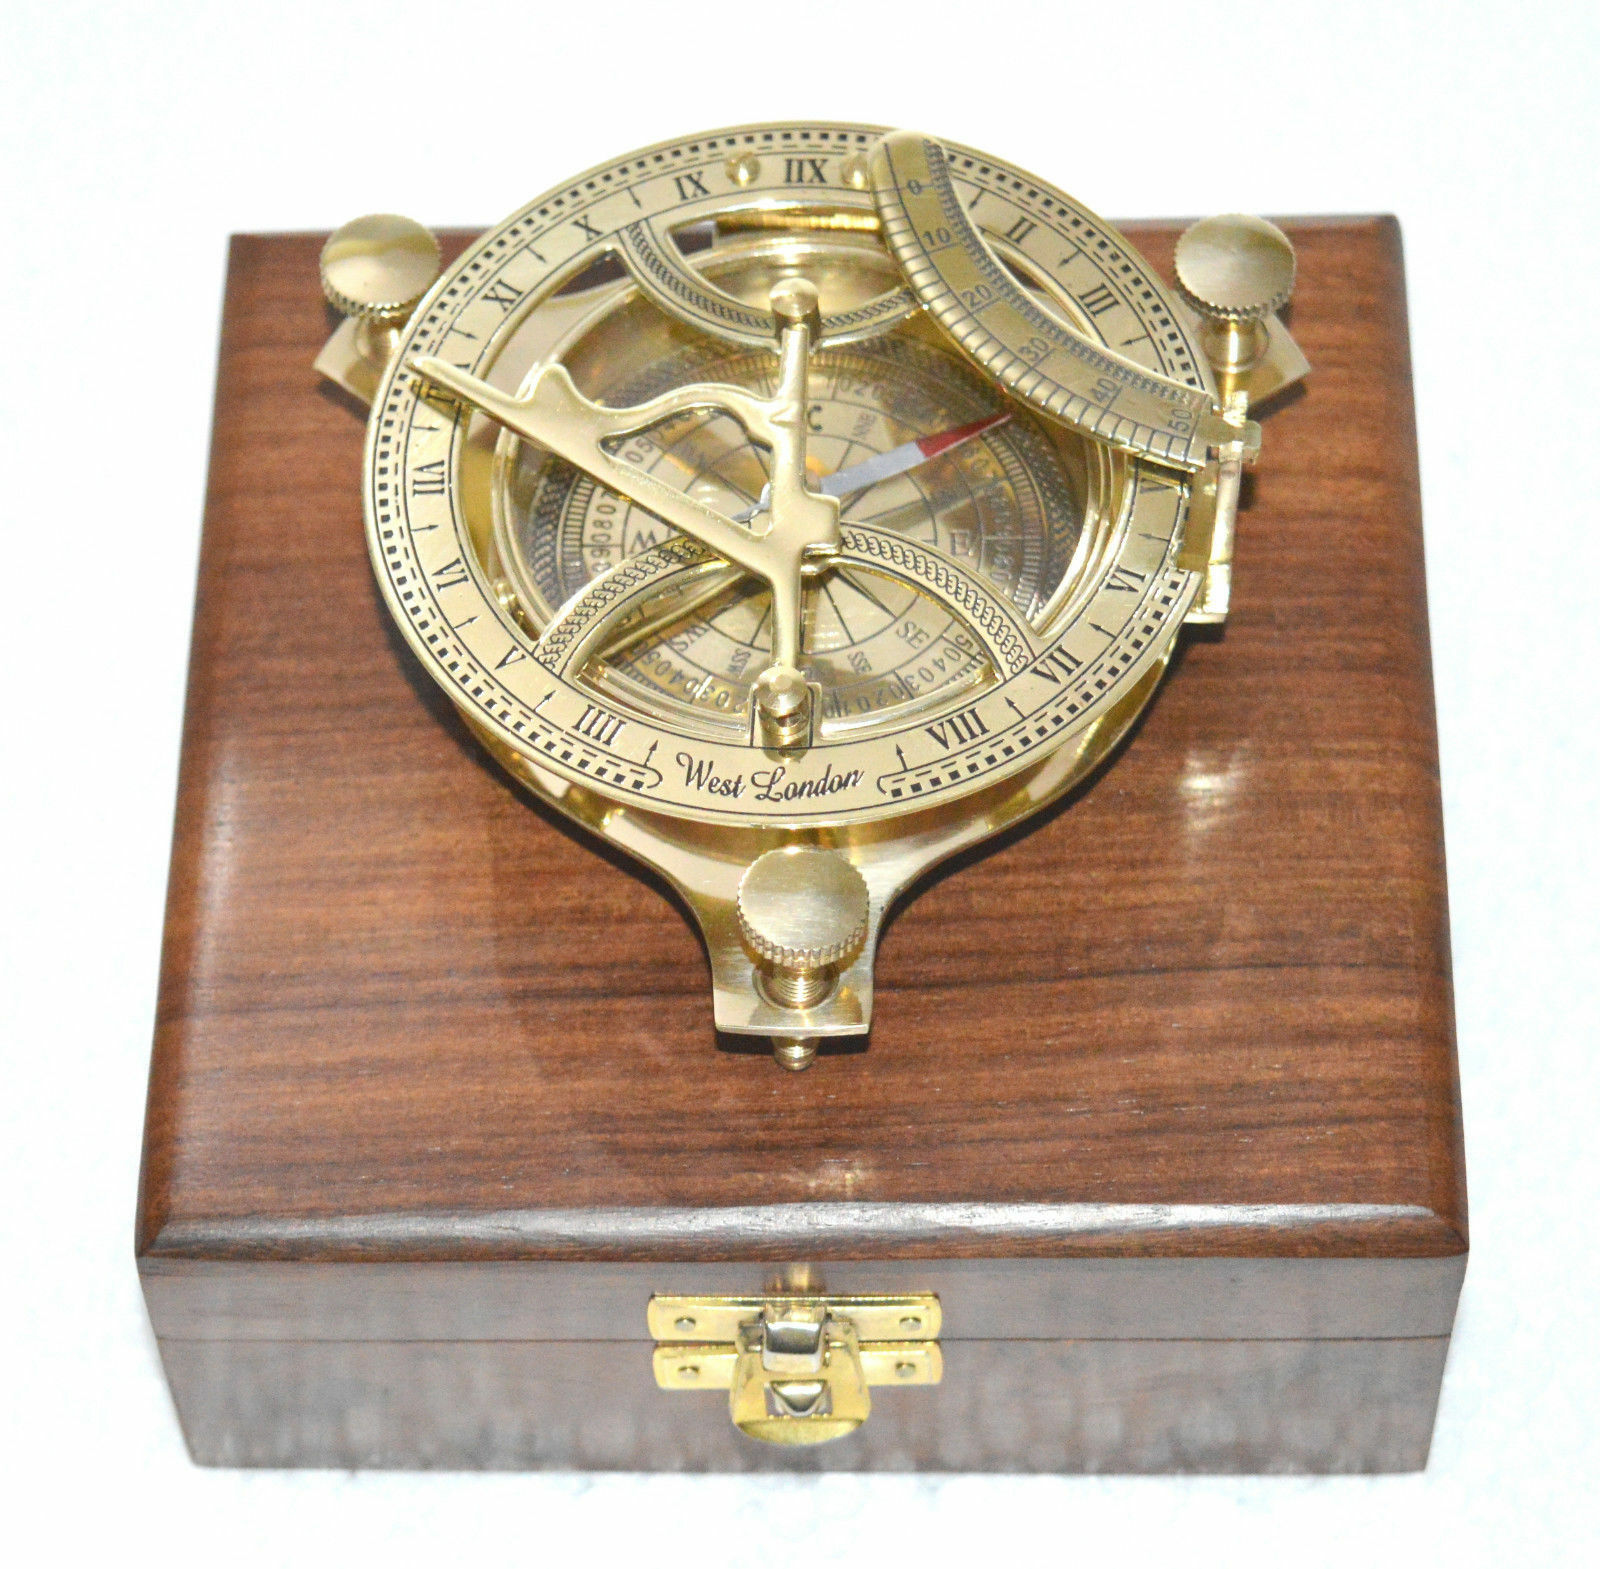 BRASS SUNDIALCOMPASS MARITIME WEST LONDON NAVIGATION NAUTICAL GIFT COMPASS